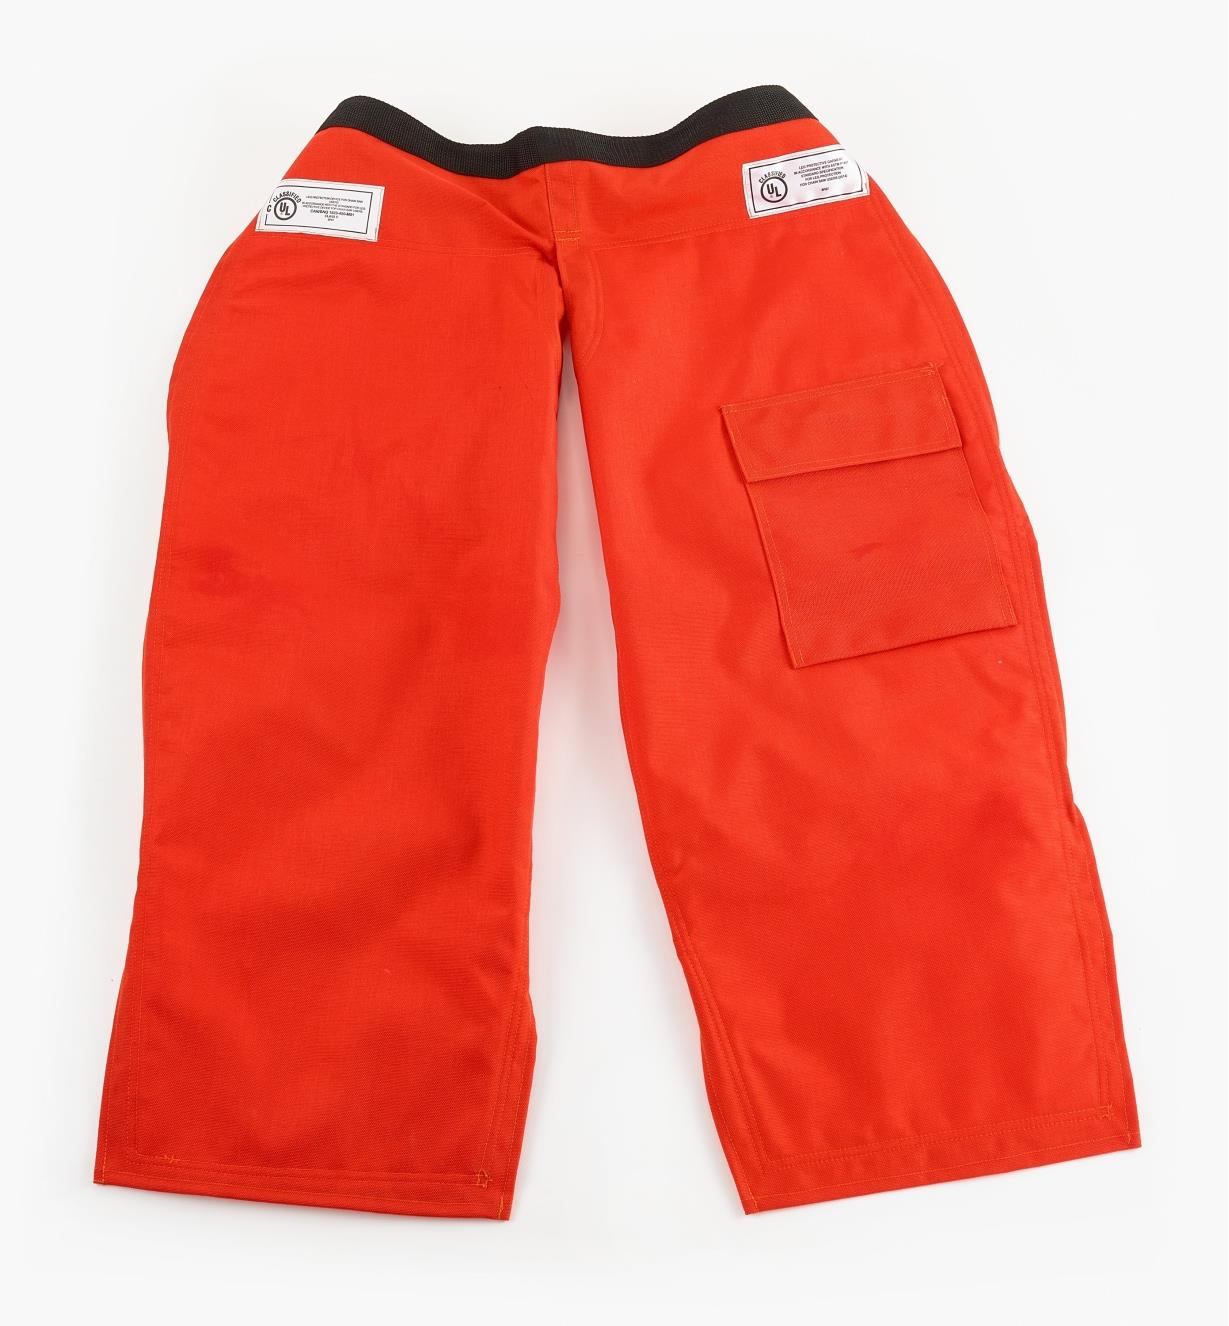 67K3006 - Safety Chaps